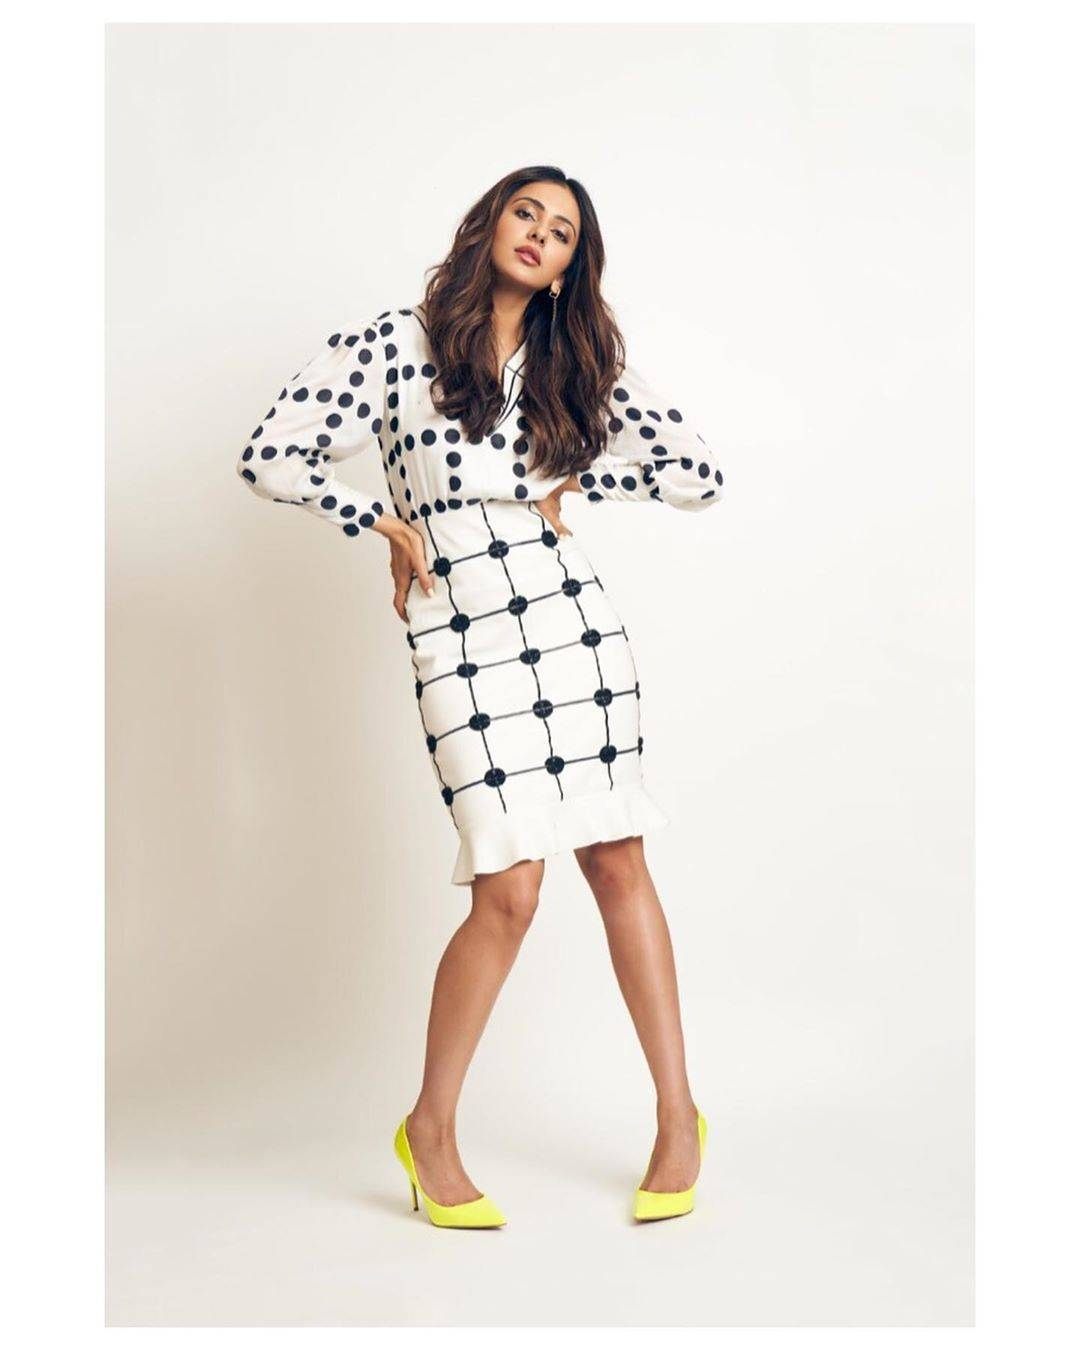 The classic yellow pumps from Steve Madden is what gives the outfit the pop it deserves. - Fashion Models